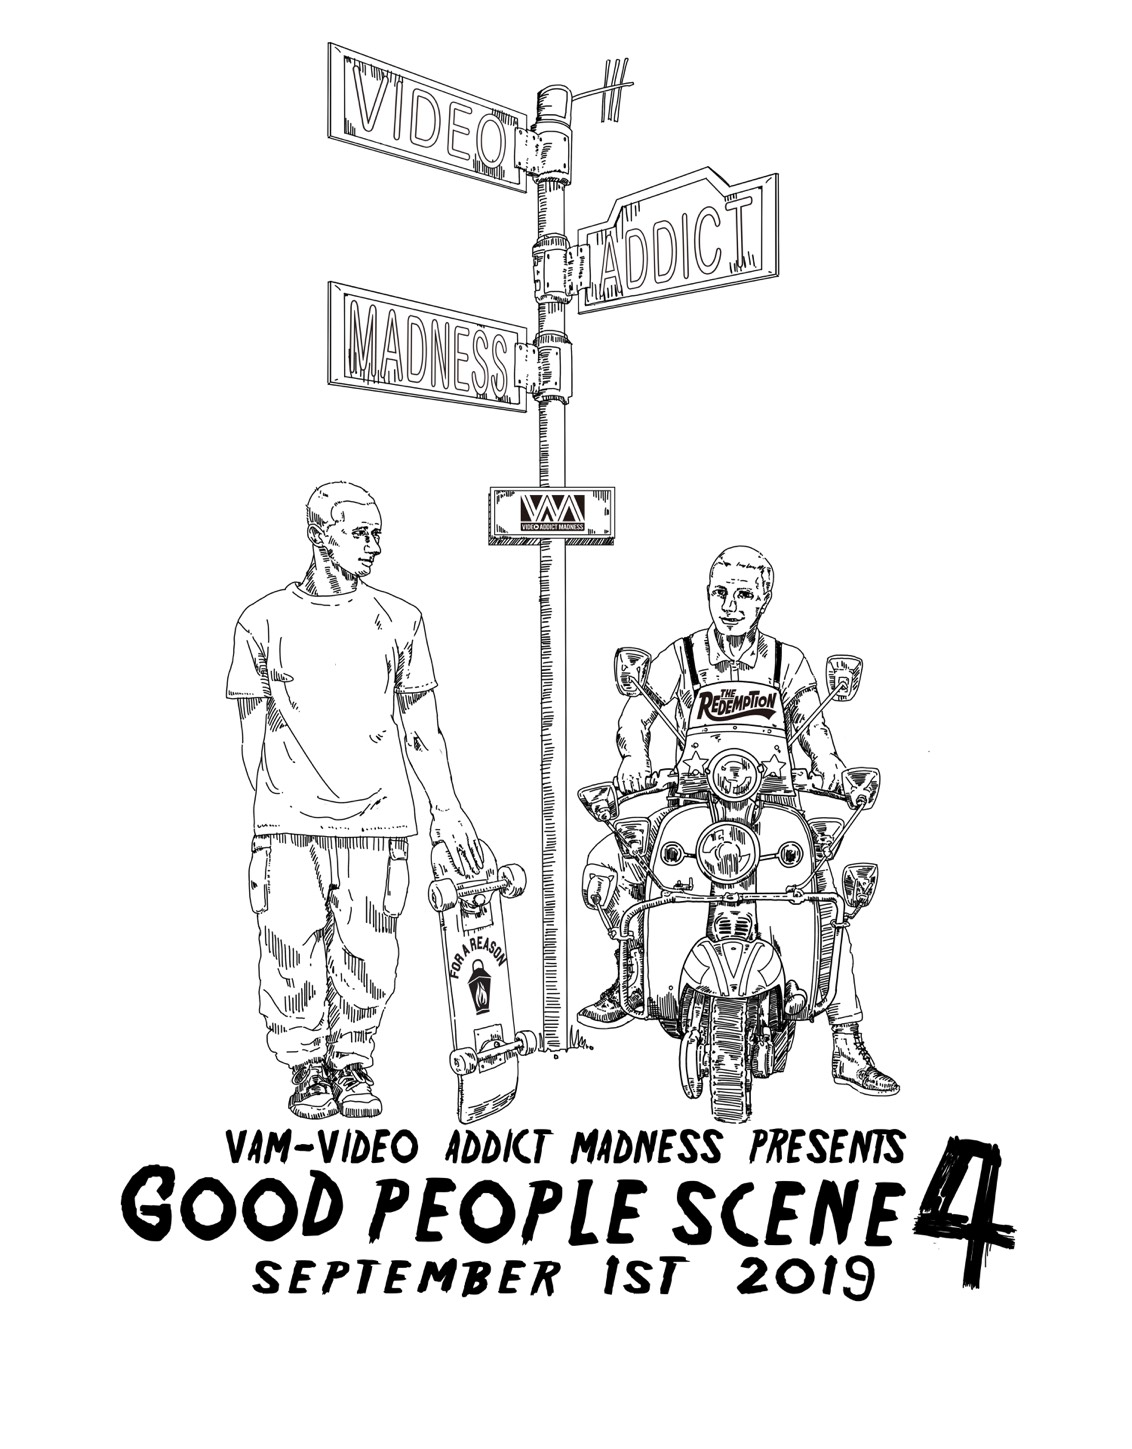 GOOD PEOPLE SCENE 4